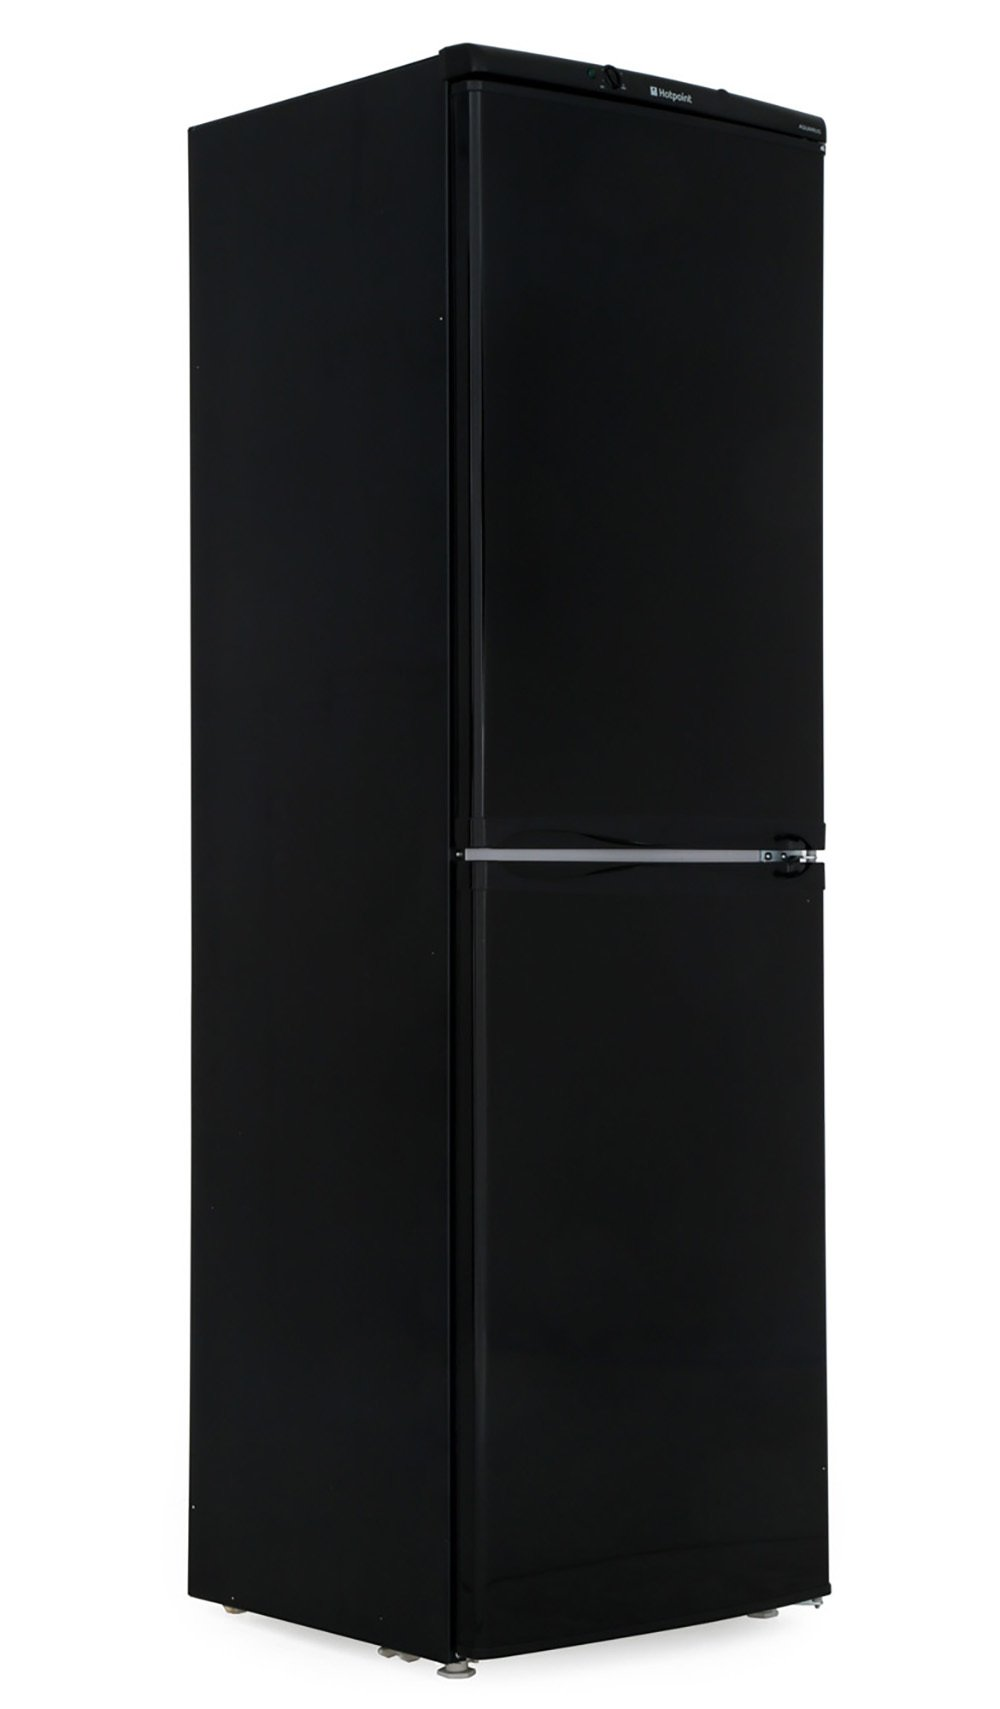 Hotpoint Aquarius HBNF5517B Frost Free Fridge Freezer